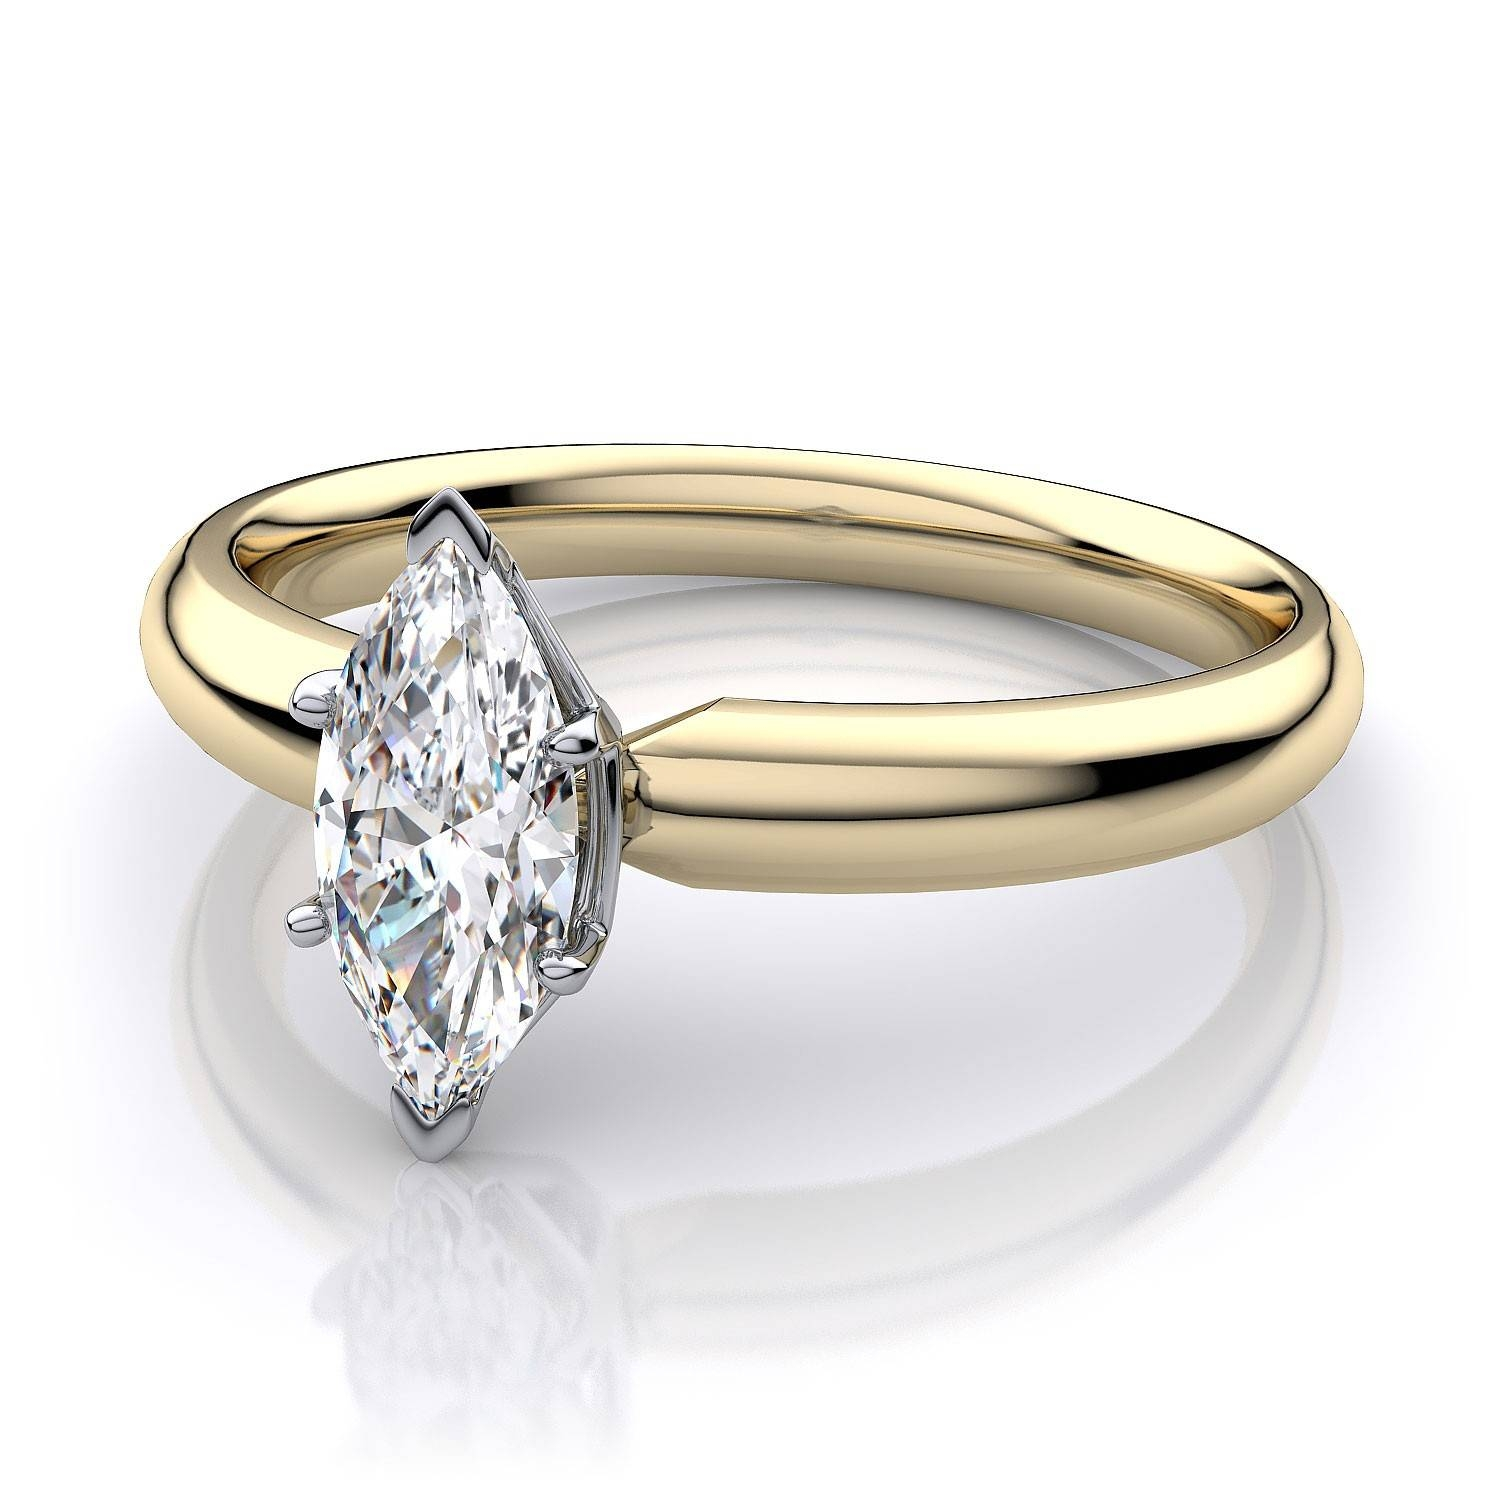 Traditional Marquise Diamond Engagement Ring In 18k Yellow Gold Inside Traditional Gold Engagement Rings (View 15 of 15)